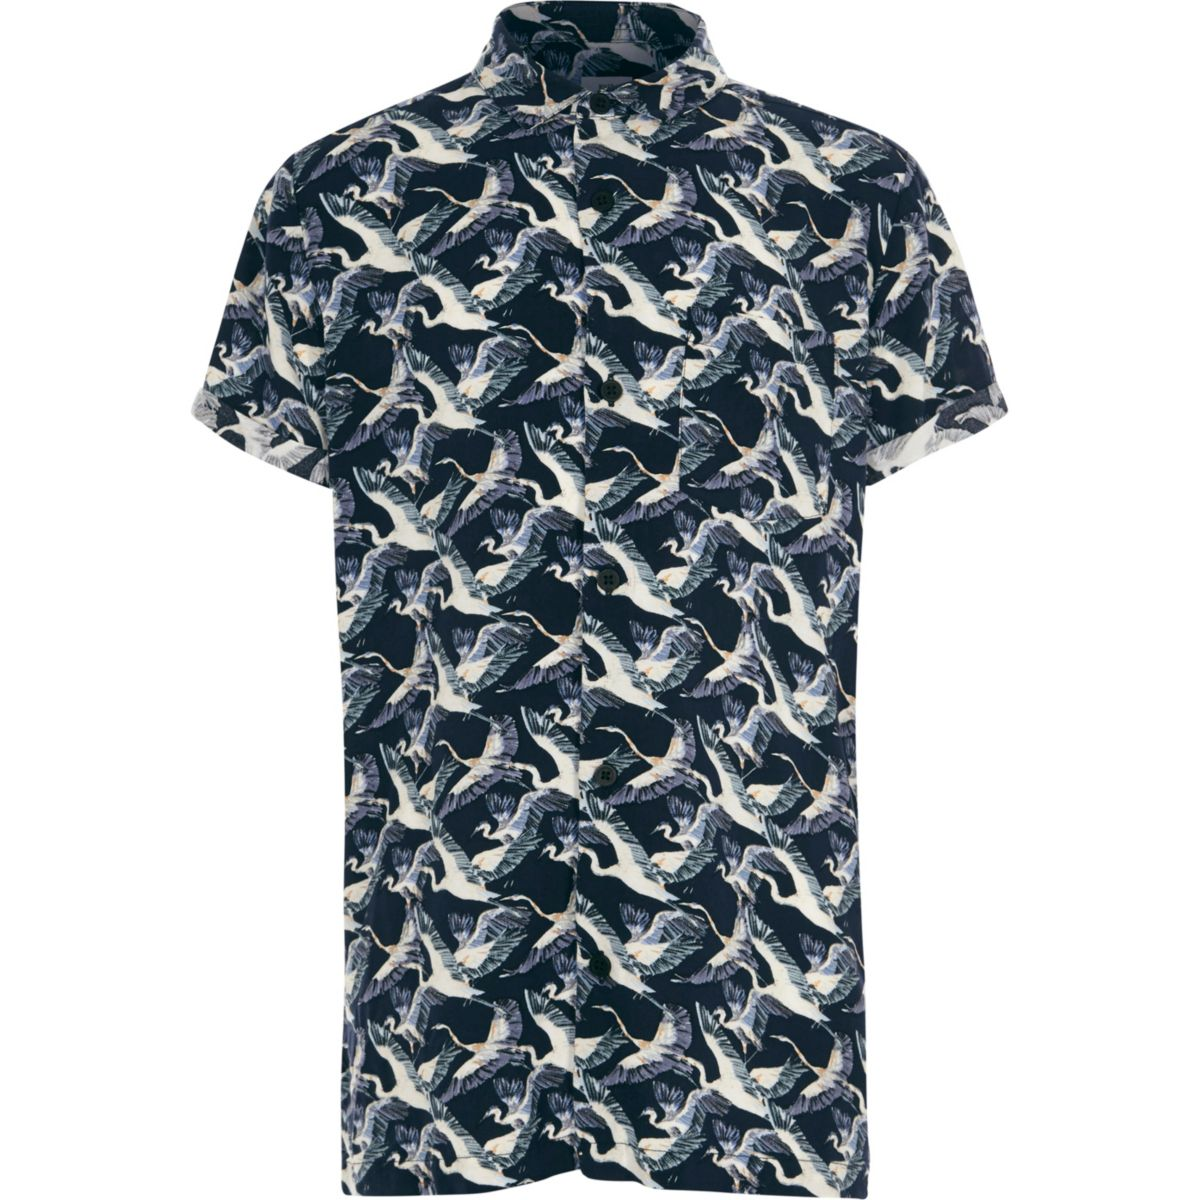 Boys navy crane bird print short sleeve shirt